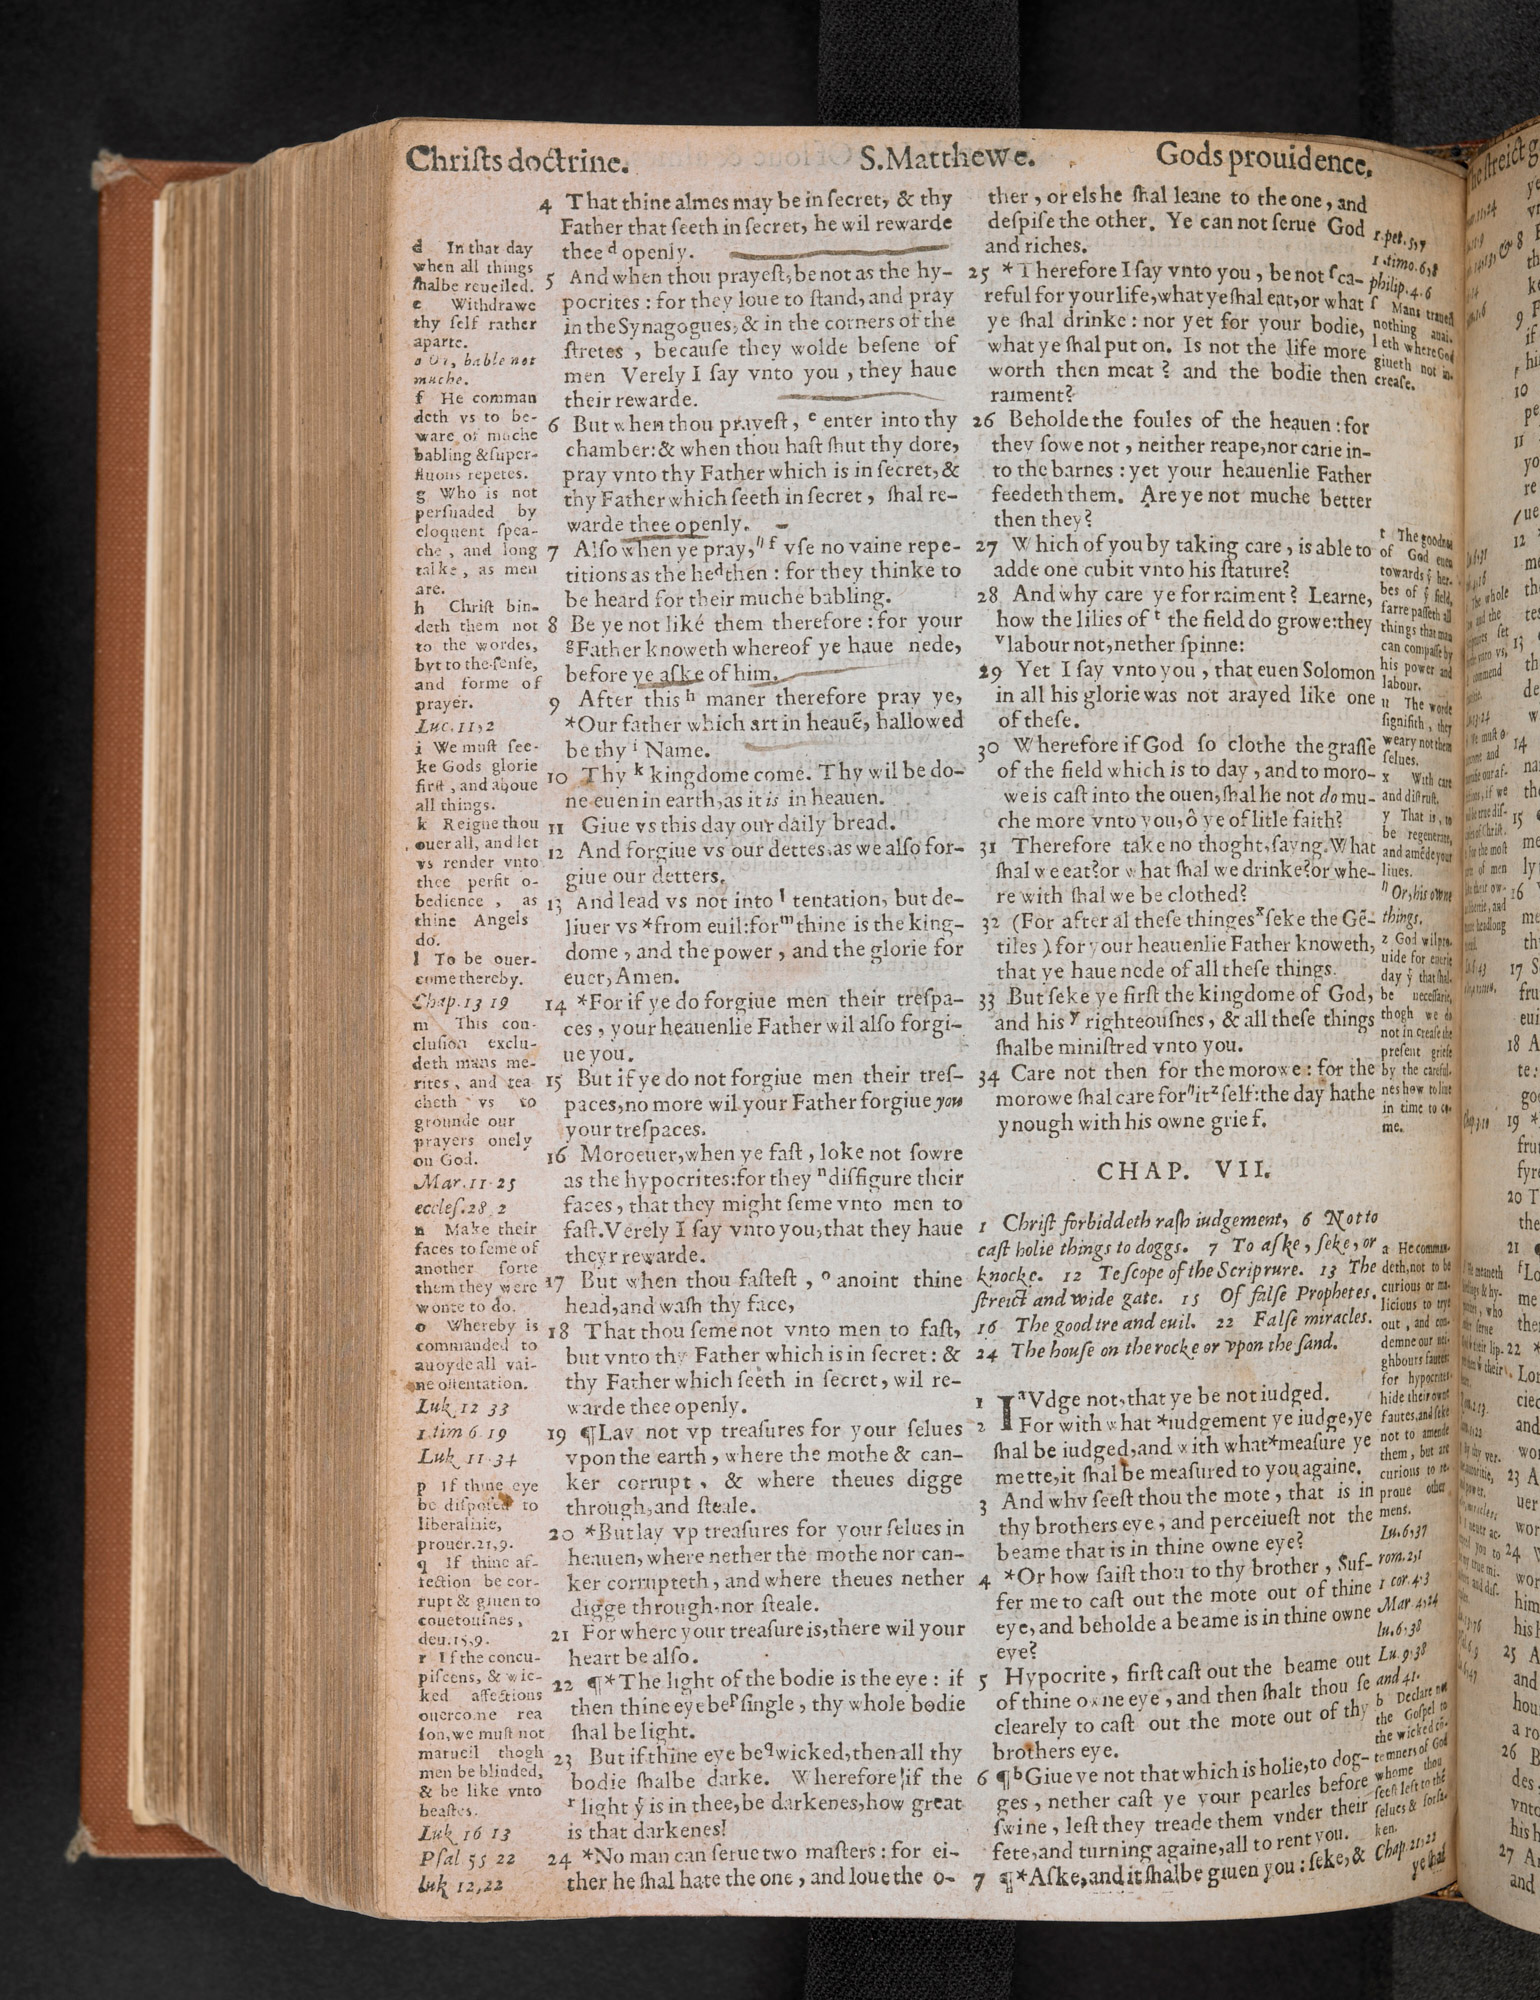 The Geneva Bible, 1570